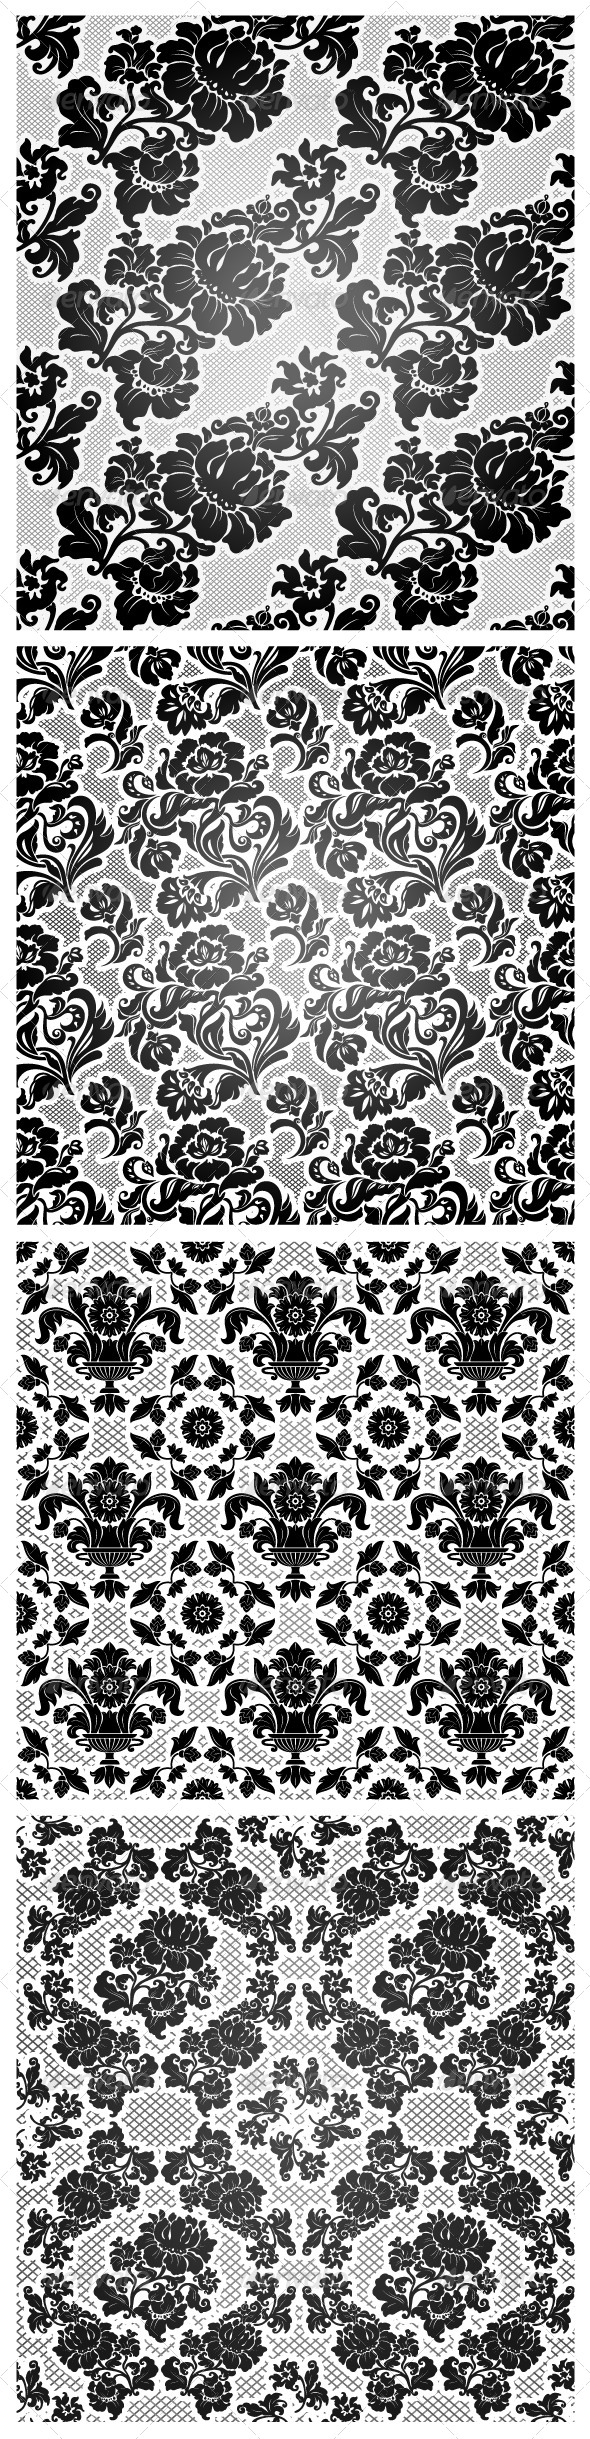 GraphicRiver 4 Lace Background Ornamental Flowers Wallpaper 4715086